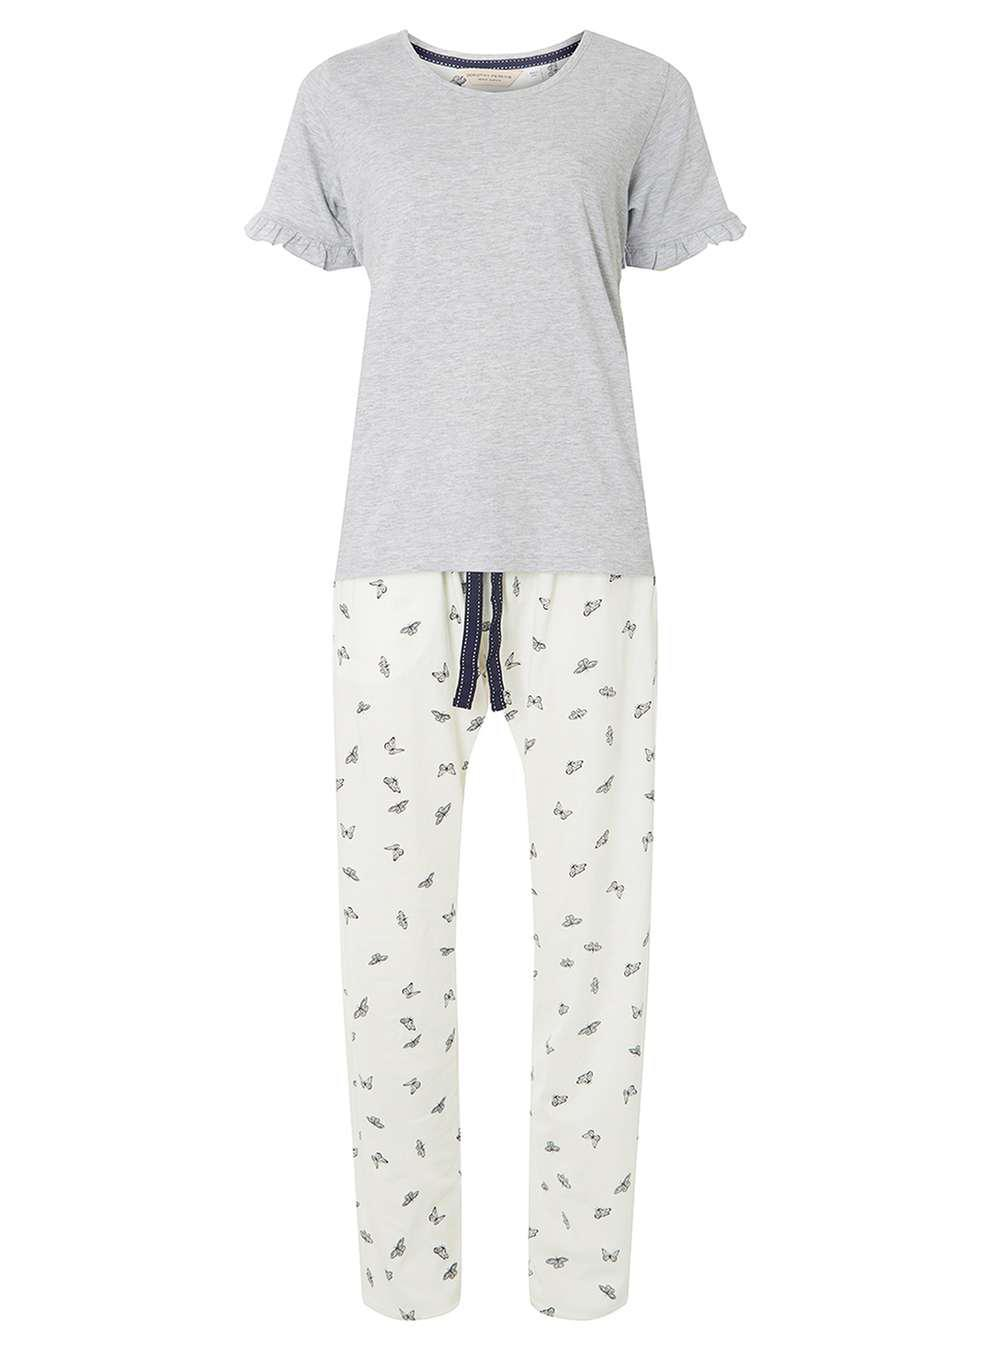 Womens Butterfly Pyjama Sets Dorothy Perkins Outlet Deals Sneakernews Sale Online Cheap Sale Store Comfortable 40Kmf8UY19